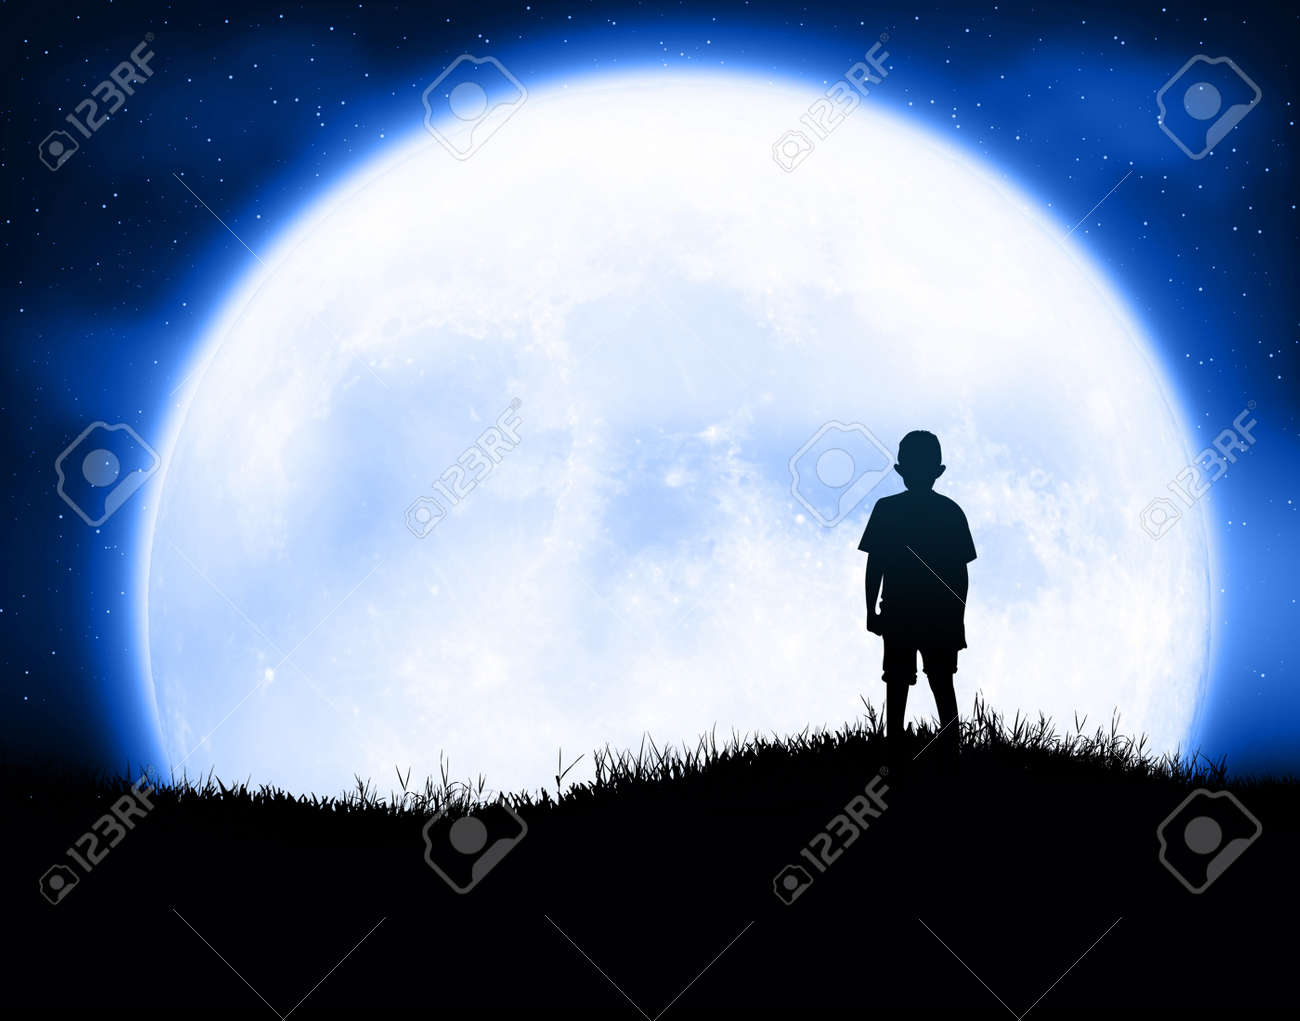 Kids at night with moon royalty free stock photography image - Kid With Moon Stock Photo 28881518